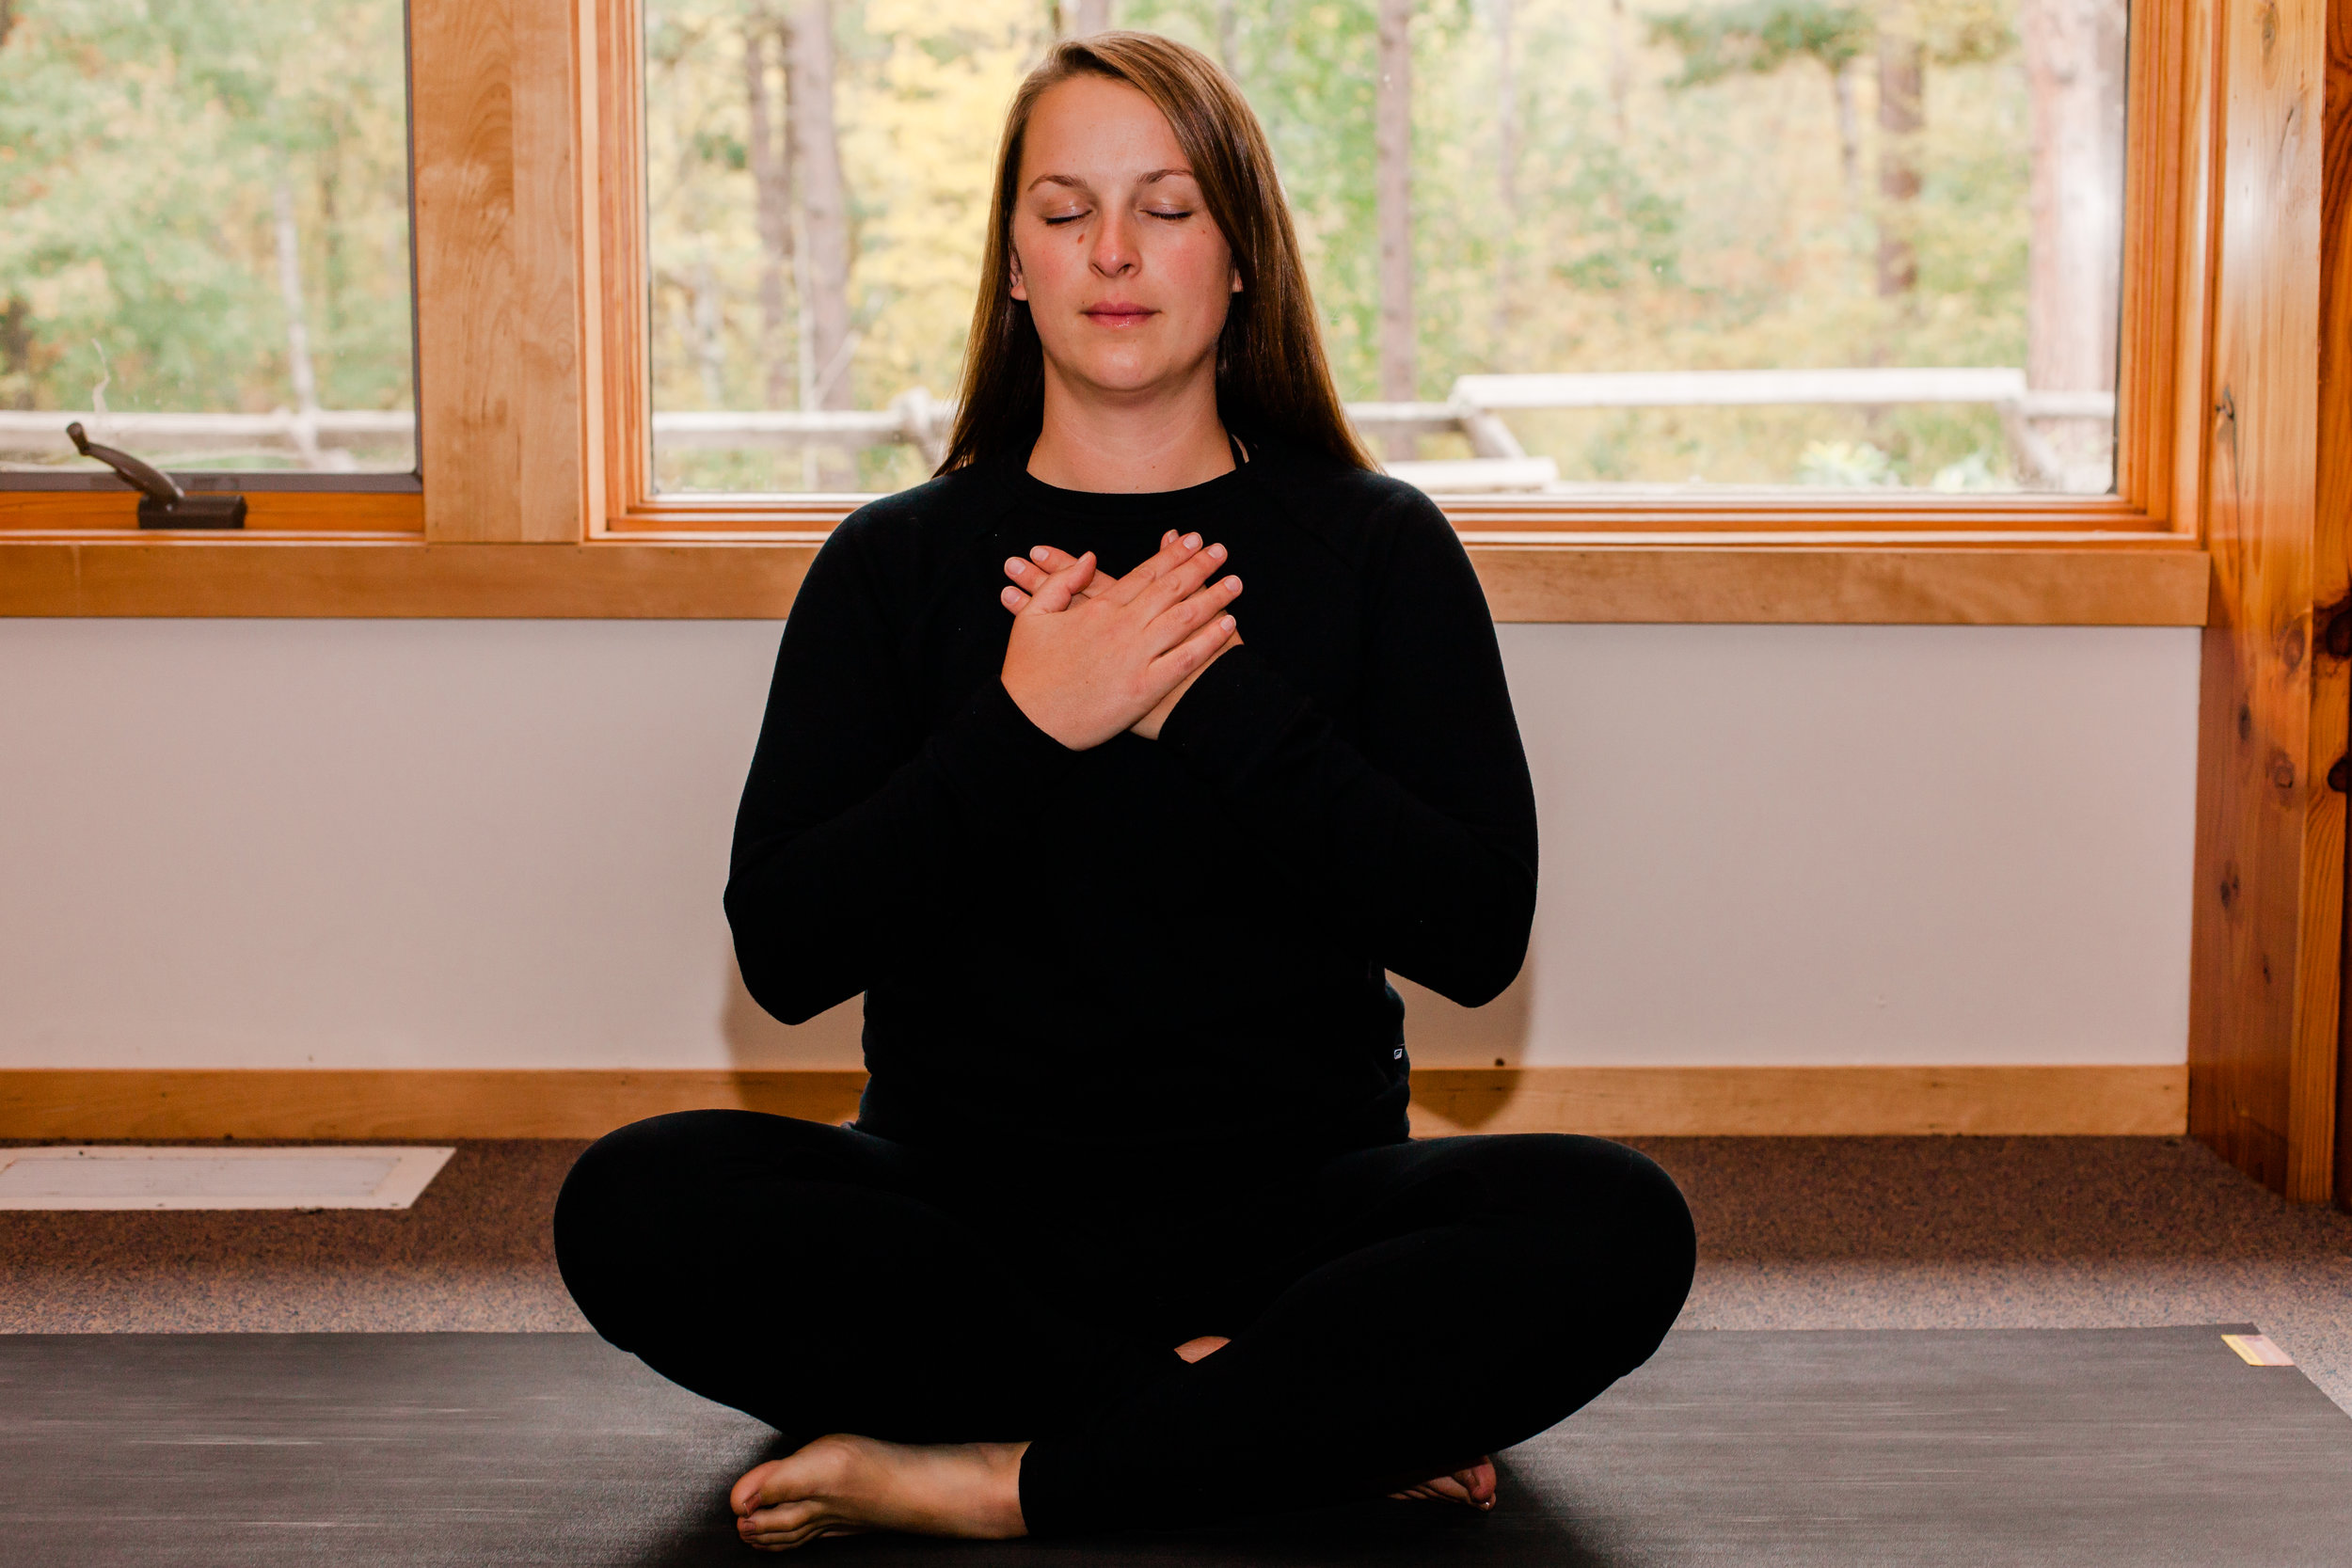 When we slow down our breathing, and extend our exhales longer than our inhales, we activate the parasympathetic nervous system, or rest-and-digest response. Our breath signals to our brain that it is okay to slow down and rest. Practicing this technique throughout the day, such as in the car, before meetings, and before lunch can help you build muscle memory around a breathing practice. The goal being- when moments of stress do come up (fight-or-flight), you will be able to tap into your breathing practice to calm down. A simple way to practice is to count on your inhale (say up to 4), and then double the count on the exhale (in this example 8).  Try using this breathing technique throughout the postures below. After a while you will fall into rhythm with your breath and the counting will no longer be necessary.